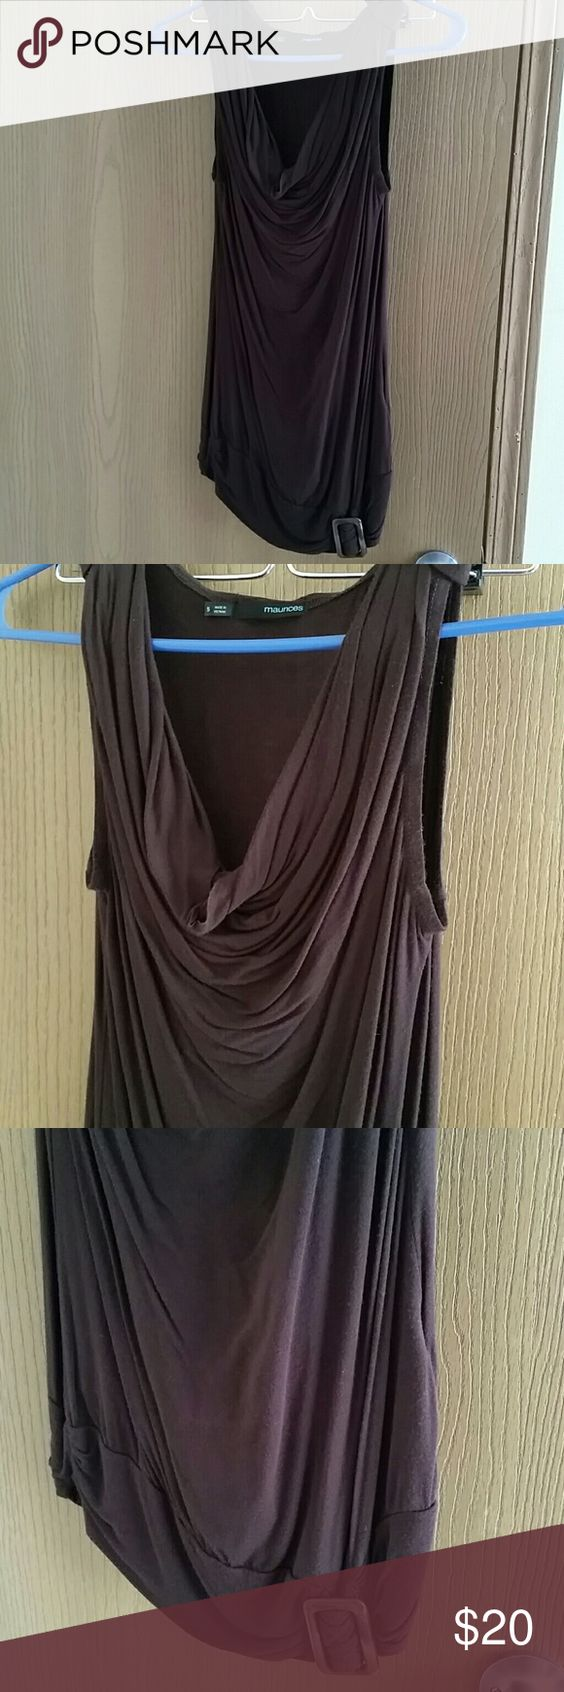 Sale! Brown cowl neck dressy top Top has a cowl neck and buckle on the bottom. Never worn. Offers welcome. Maurices Tops